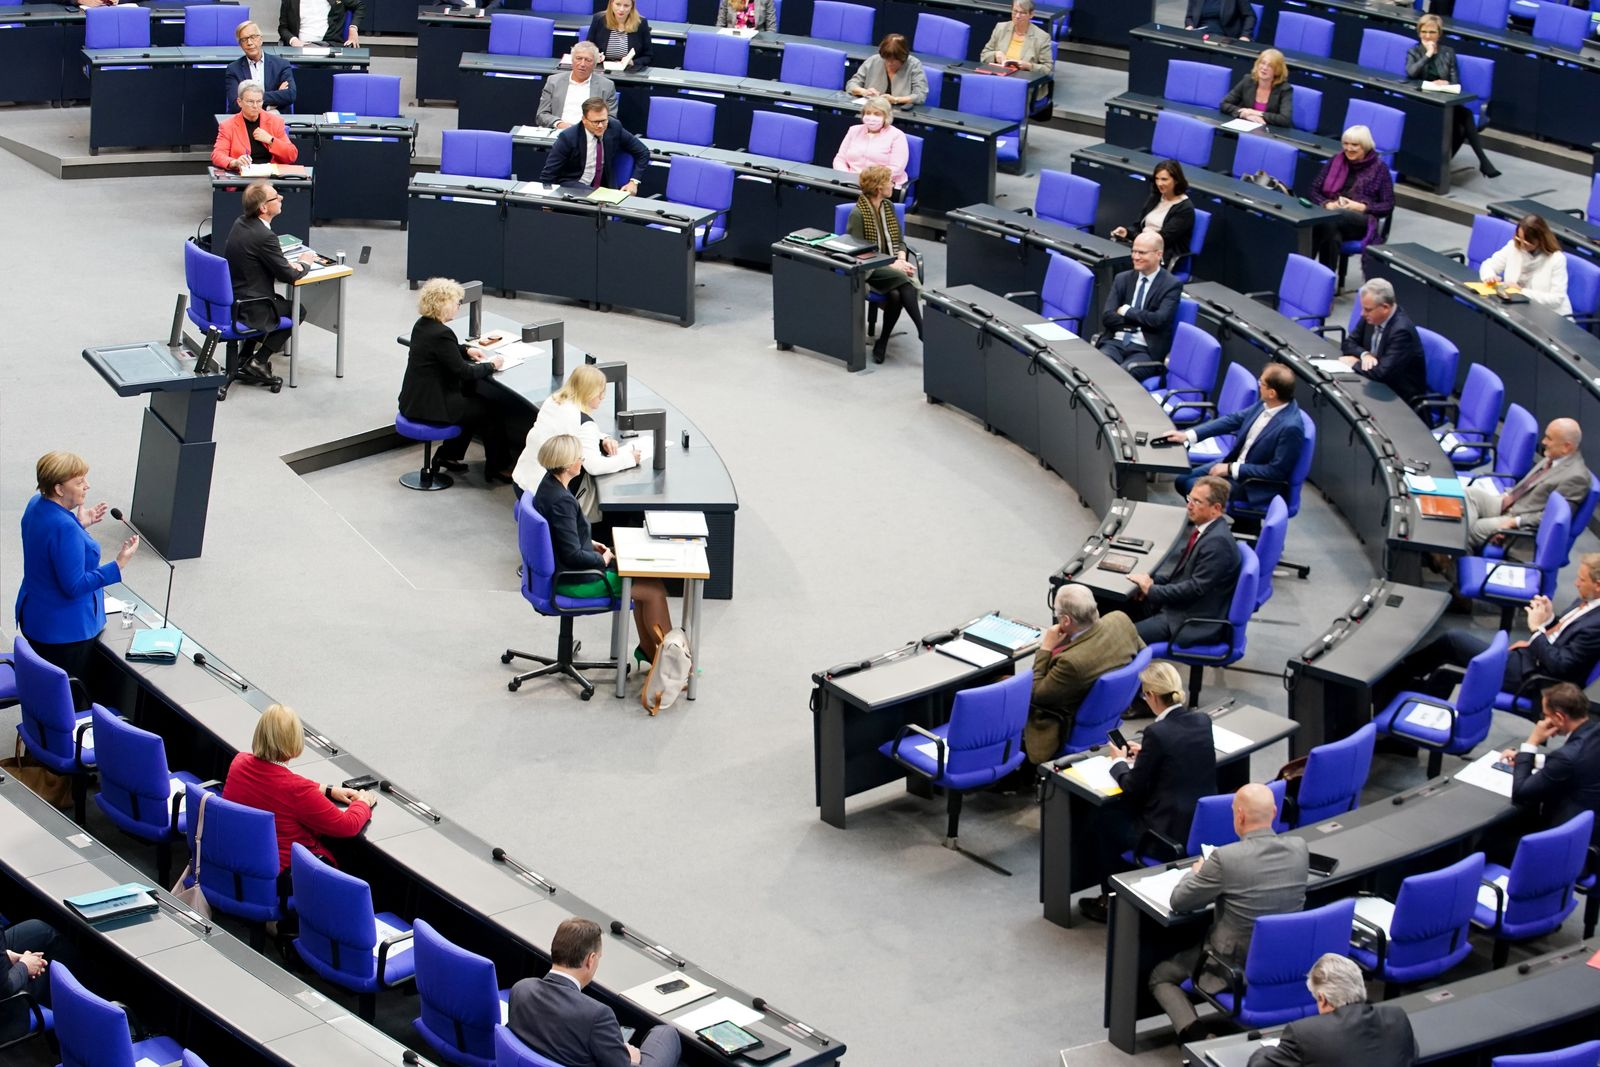 German Bundestag Q&A session with Chancellor Merkel, Berlin, Germany - 13 May 2020